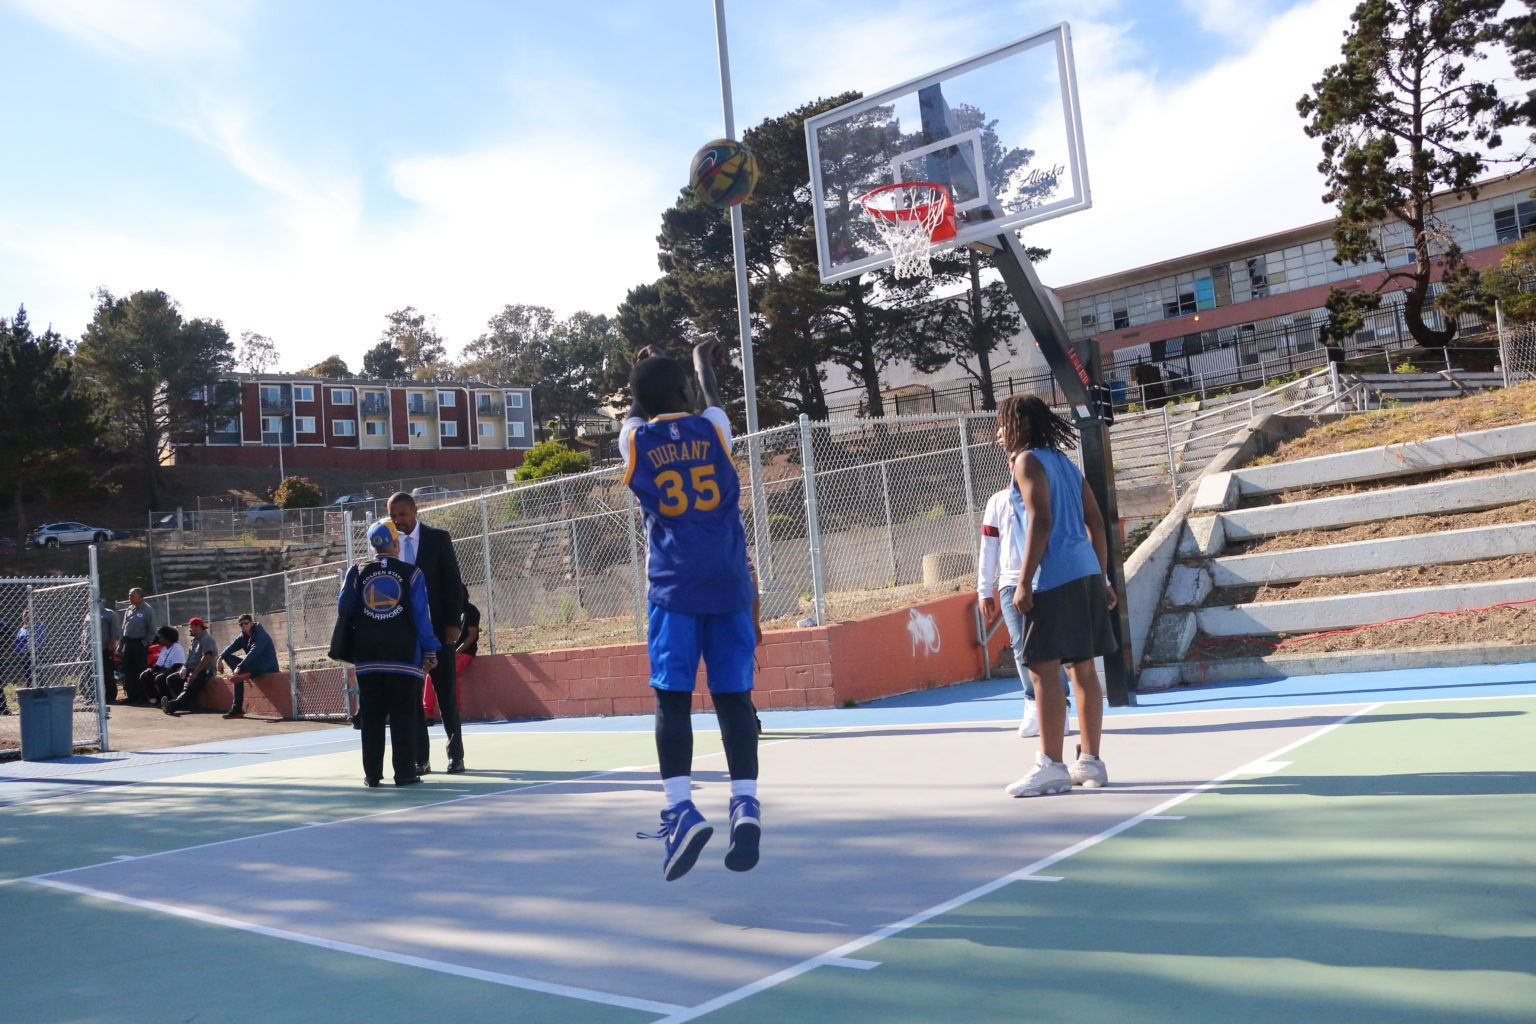 Amahje Emenike (left), 9, and Rahmore Sims, 11, play basketball at the new basketball courts on the new courts at Hunters Point Community Youth Park, made possible by the Good Tidings Foundation, Hope SF, the San Francisco Foundation and the Kevin Durant Charity Foundation. (Ryan Gorcey / S.F. Examiner)